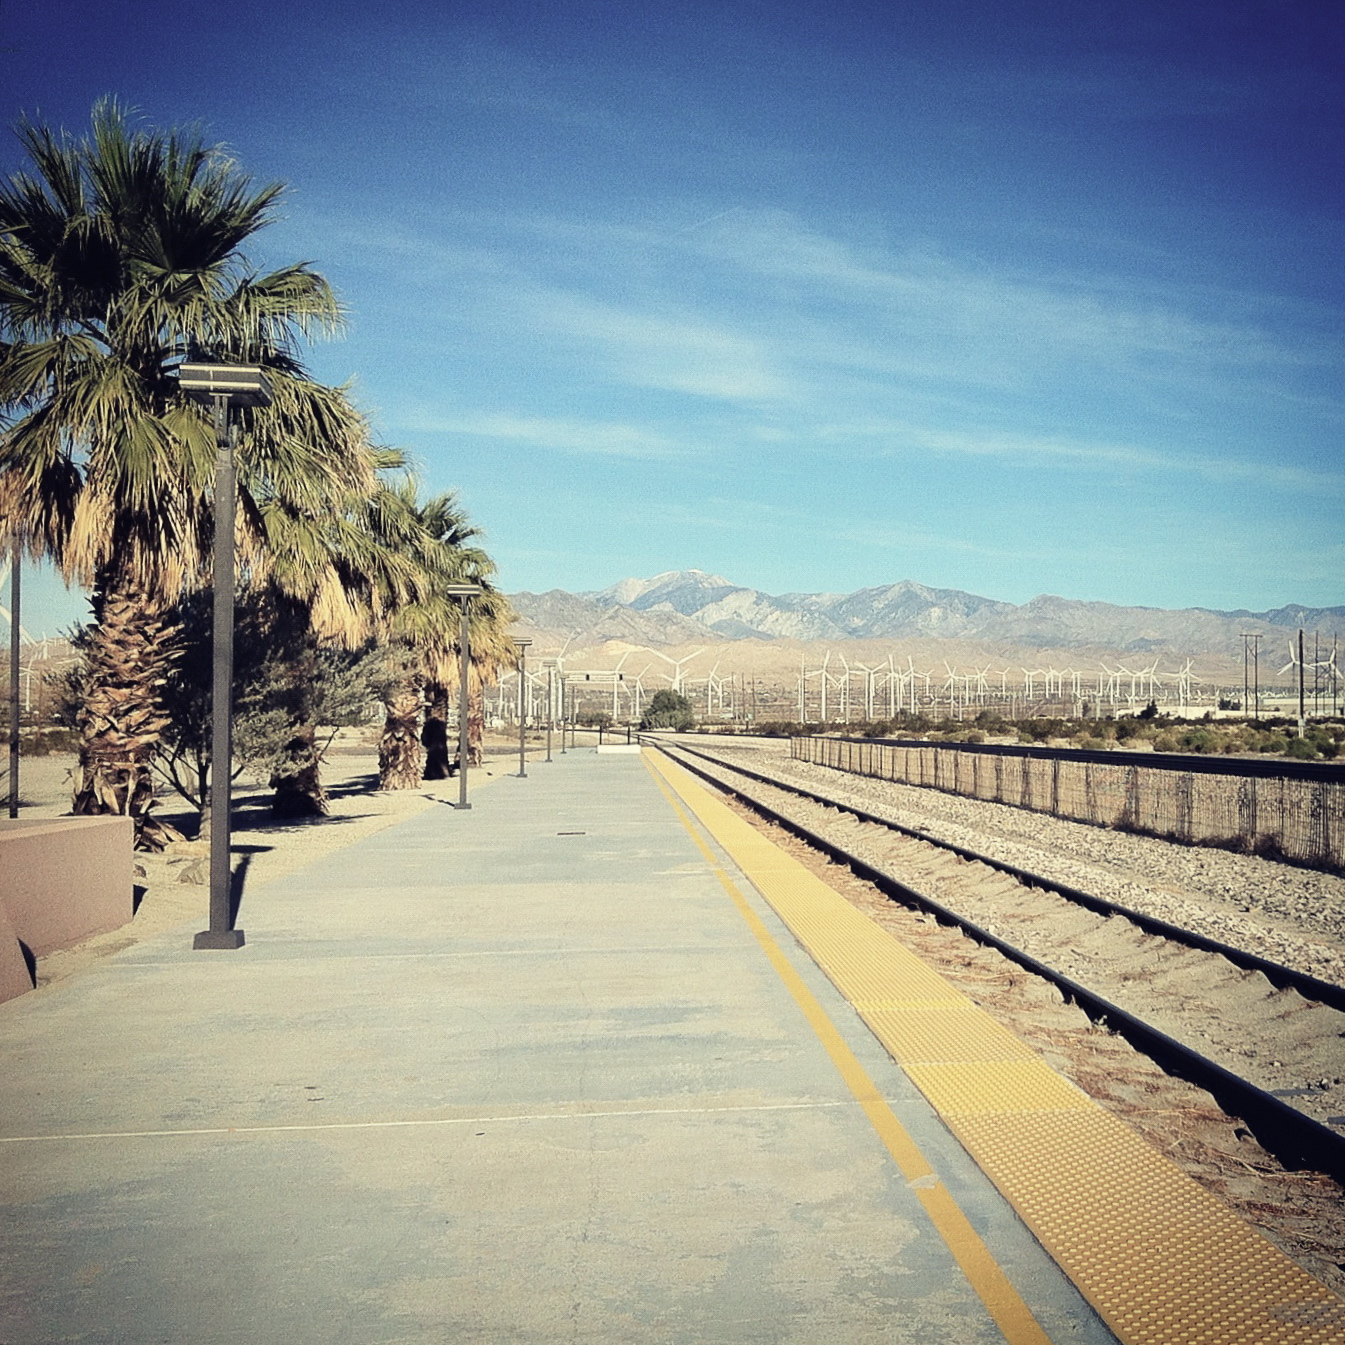 A Trip On The Amtrack From Los Angeles To Palm Springs